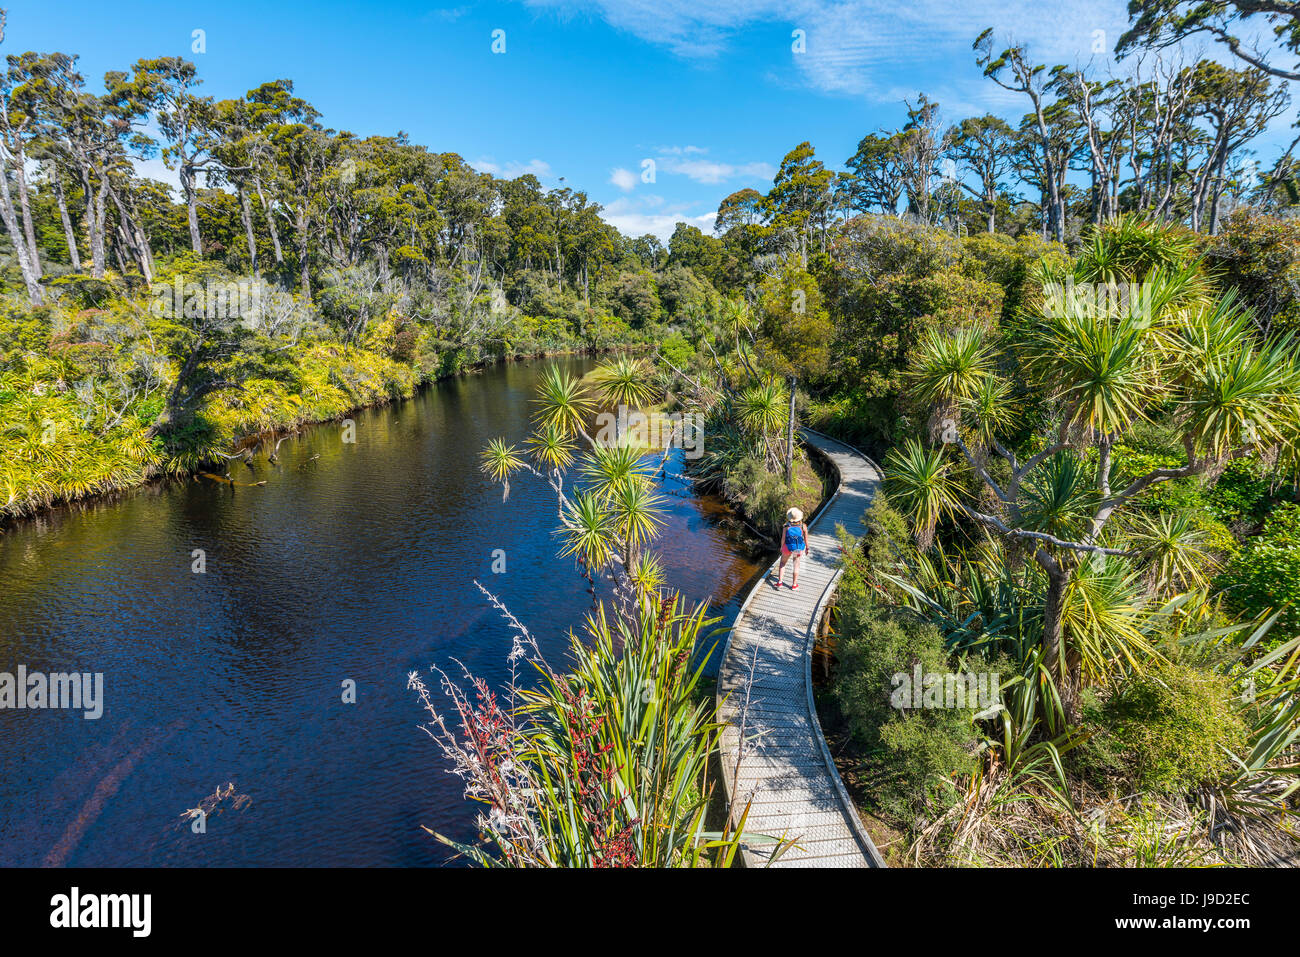 Female hiker at river with path, Ship Creek, moderate rain forest, Haast, West Coast, New Zealand - Stock Image